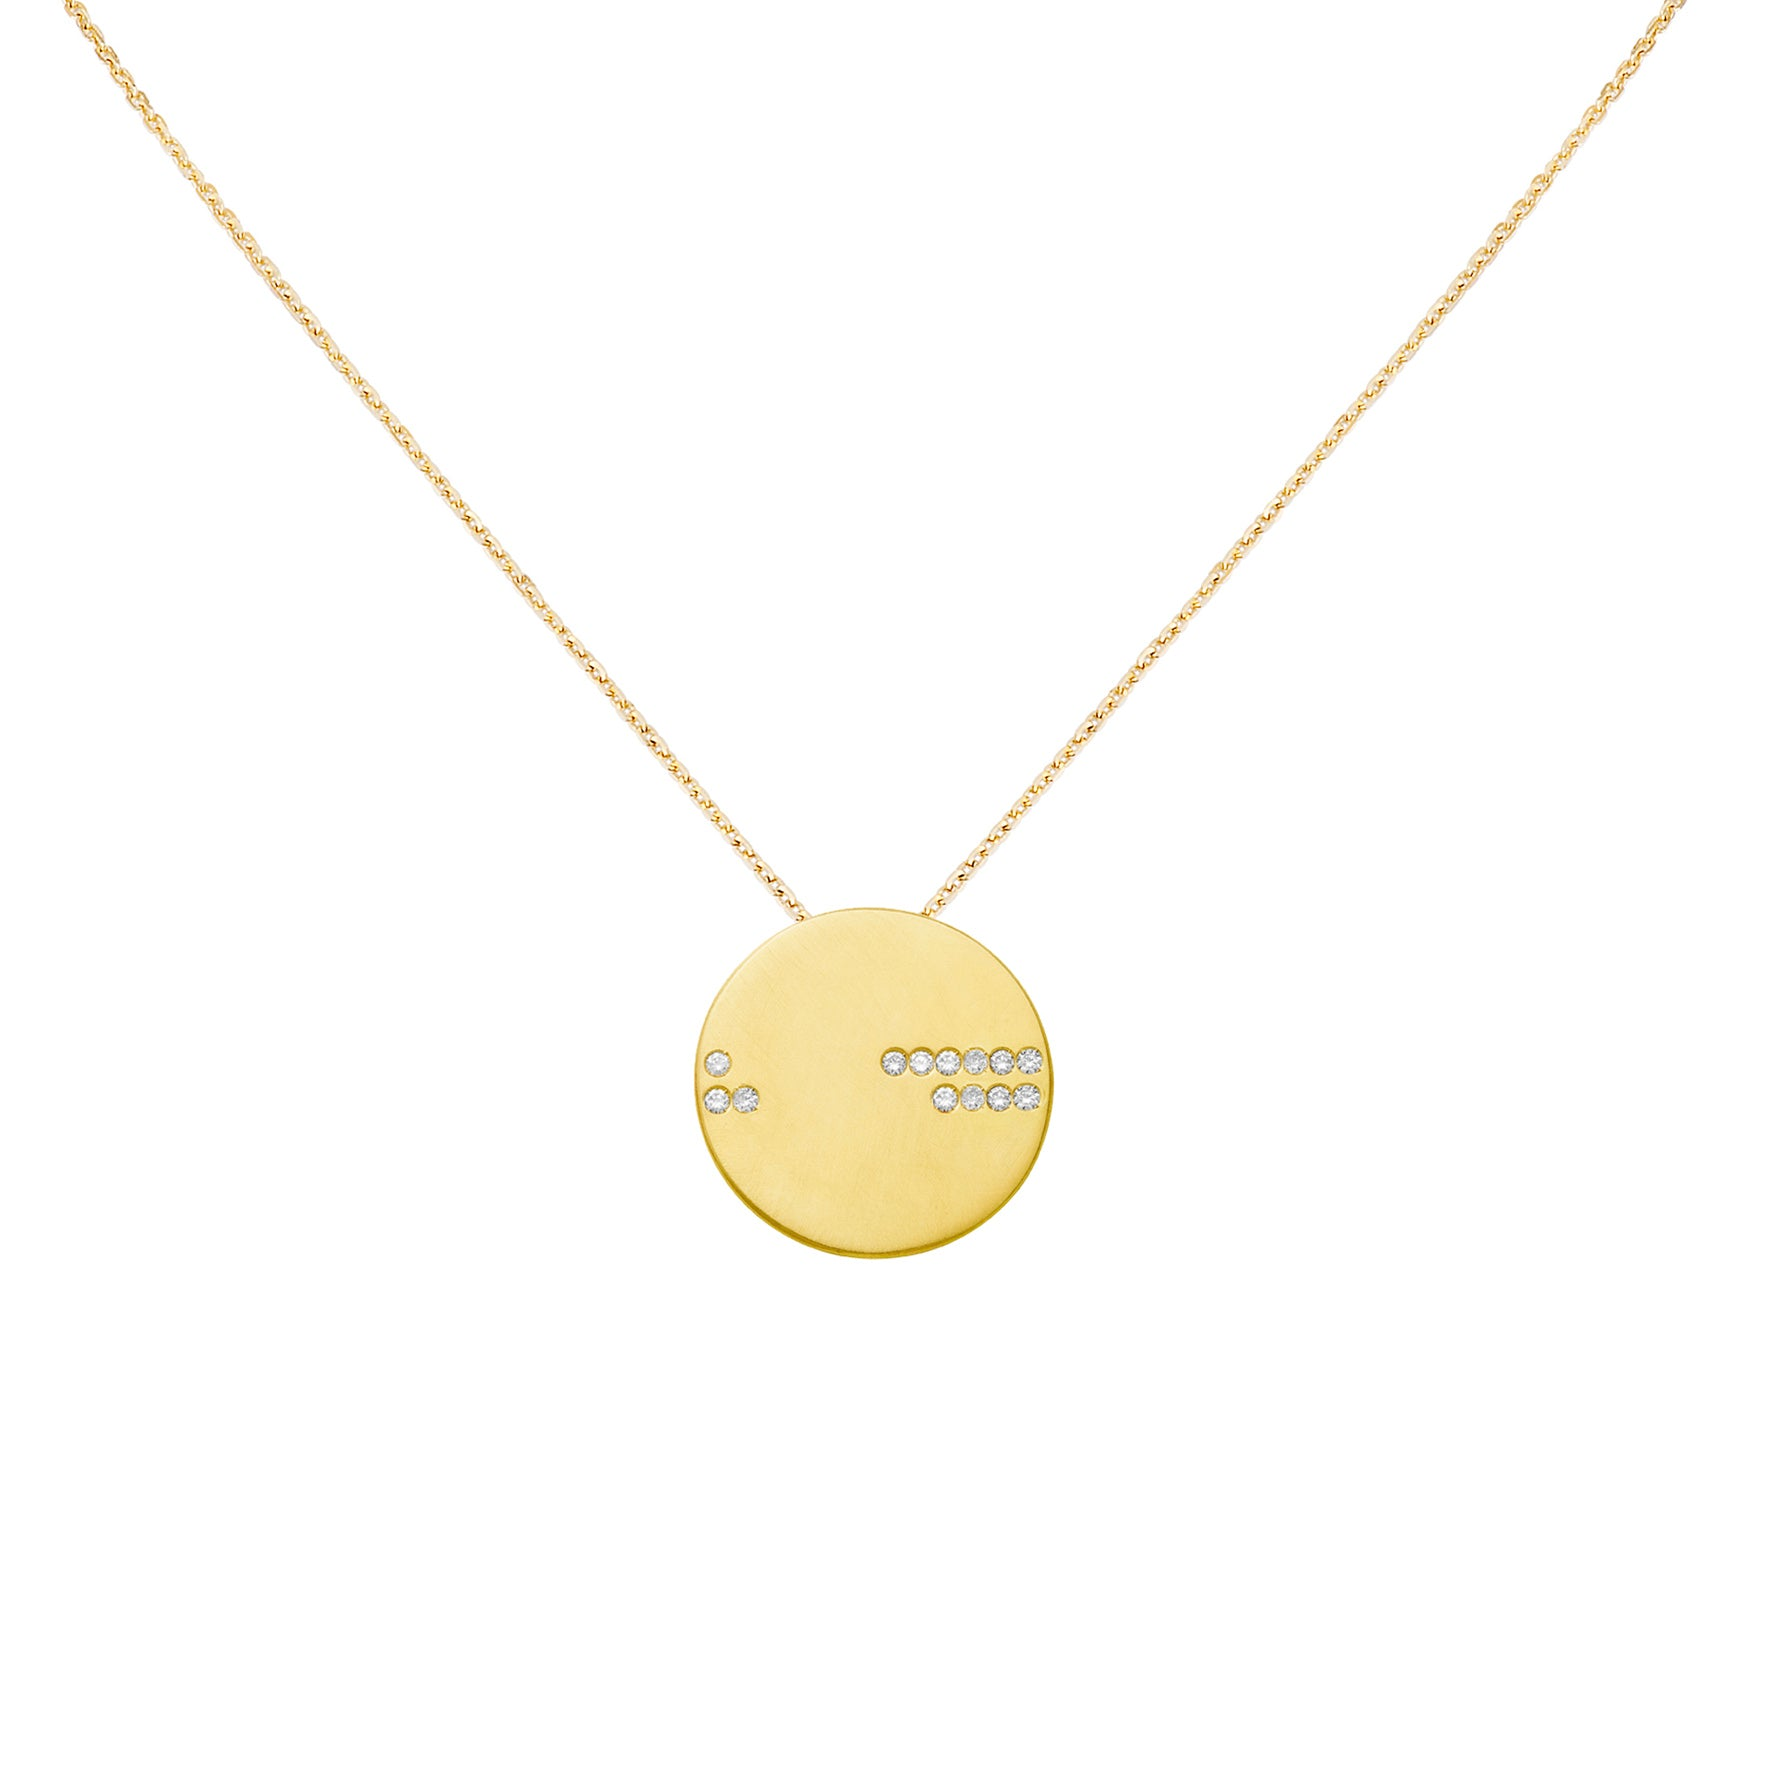 Collier Horizon Or jaune et Diamants